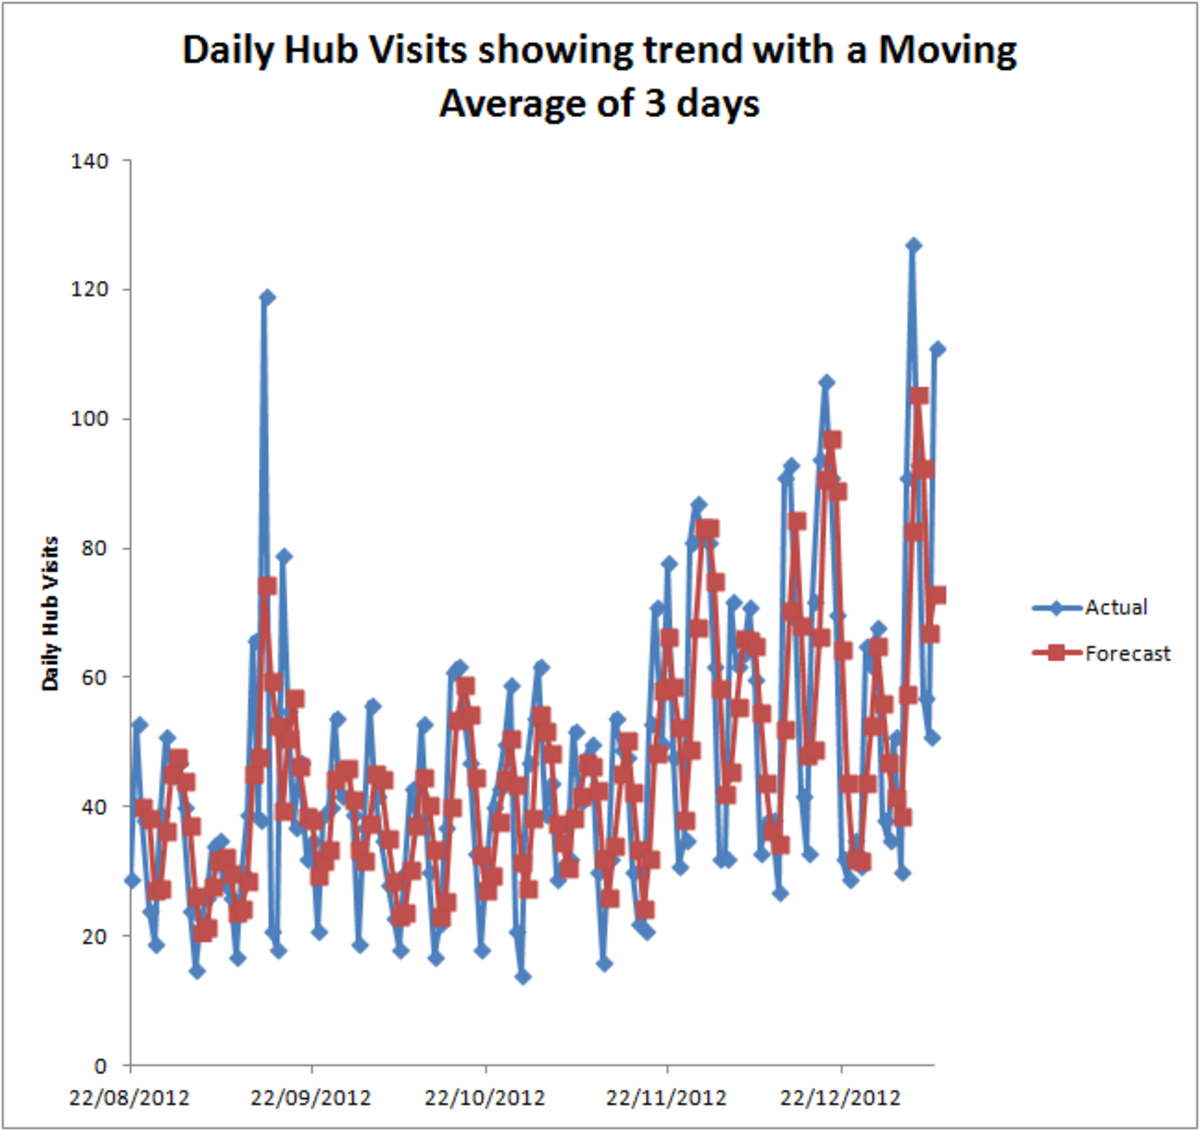 Moving Average with an interval that does not show a definitive trend created using the Moving Average Tool from the Analysis Toolpak in Excel 2007 and Excel 2010.